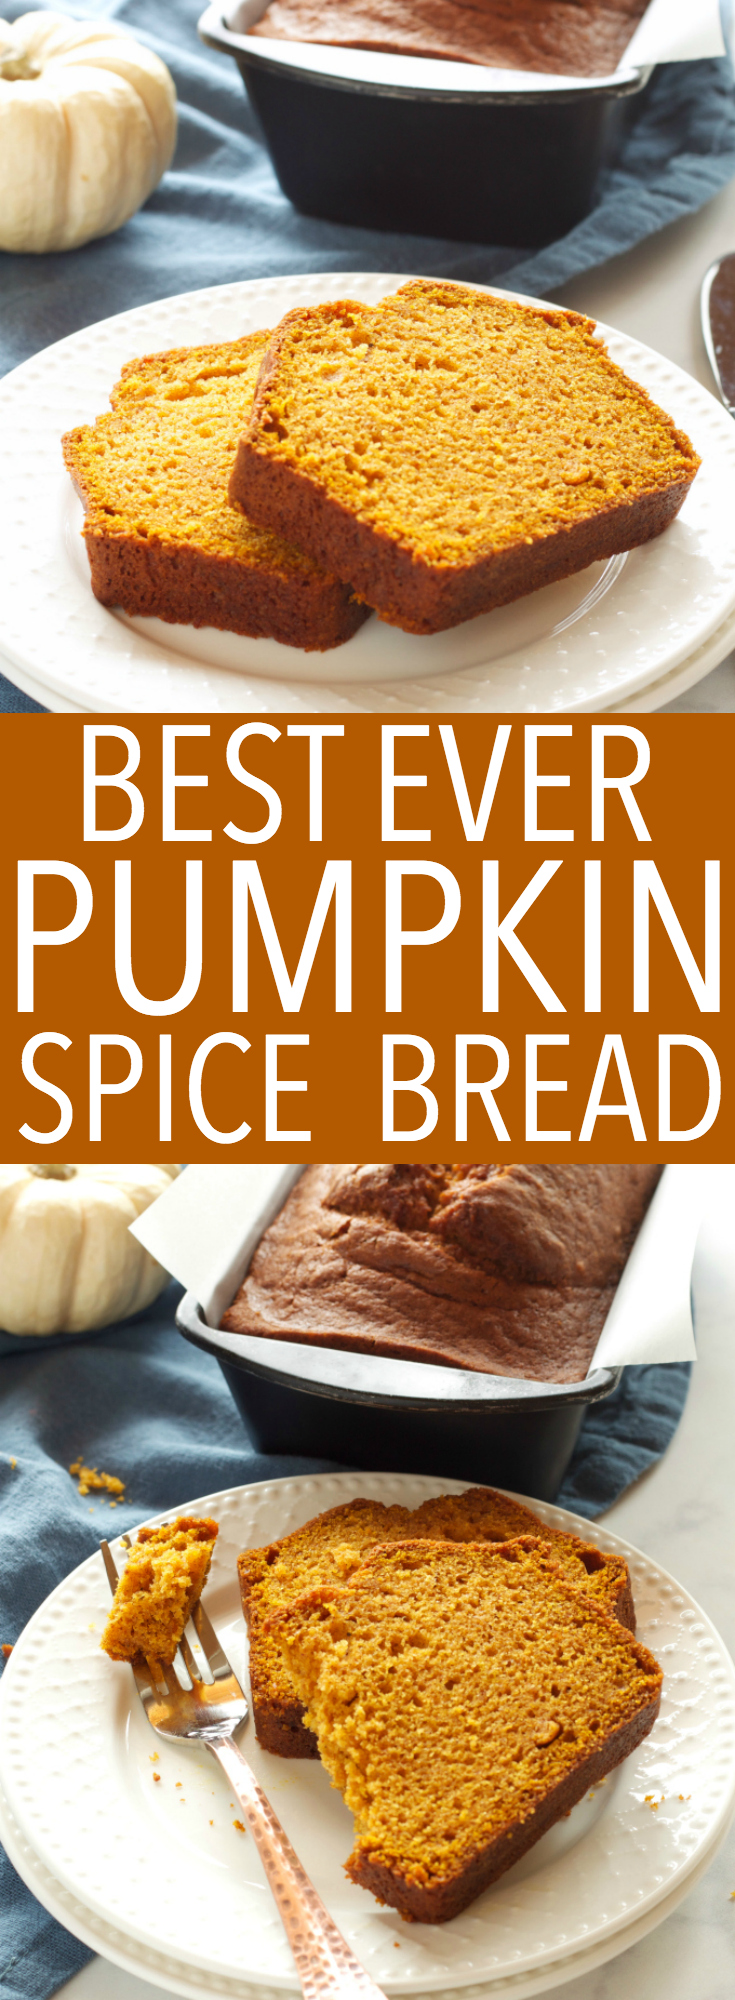 This Best Ever Pumpkin Spice Bread is moist and flavourful and packed with pumpkin and spices, and it's so easy to make in only one bowl! Recipe from thebusybaker.ca! #fallpumpkinrecipe #besteverpumpkinloaf #besteverpumpkinrecipe #easypumpkinrecipe via @busybakerblog